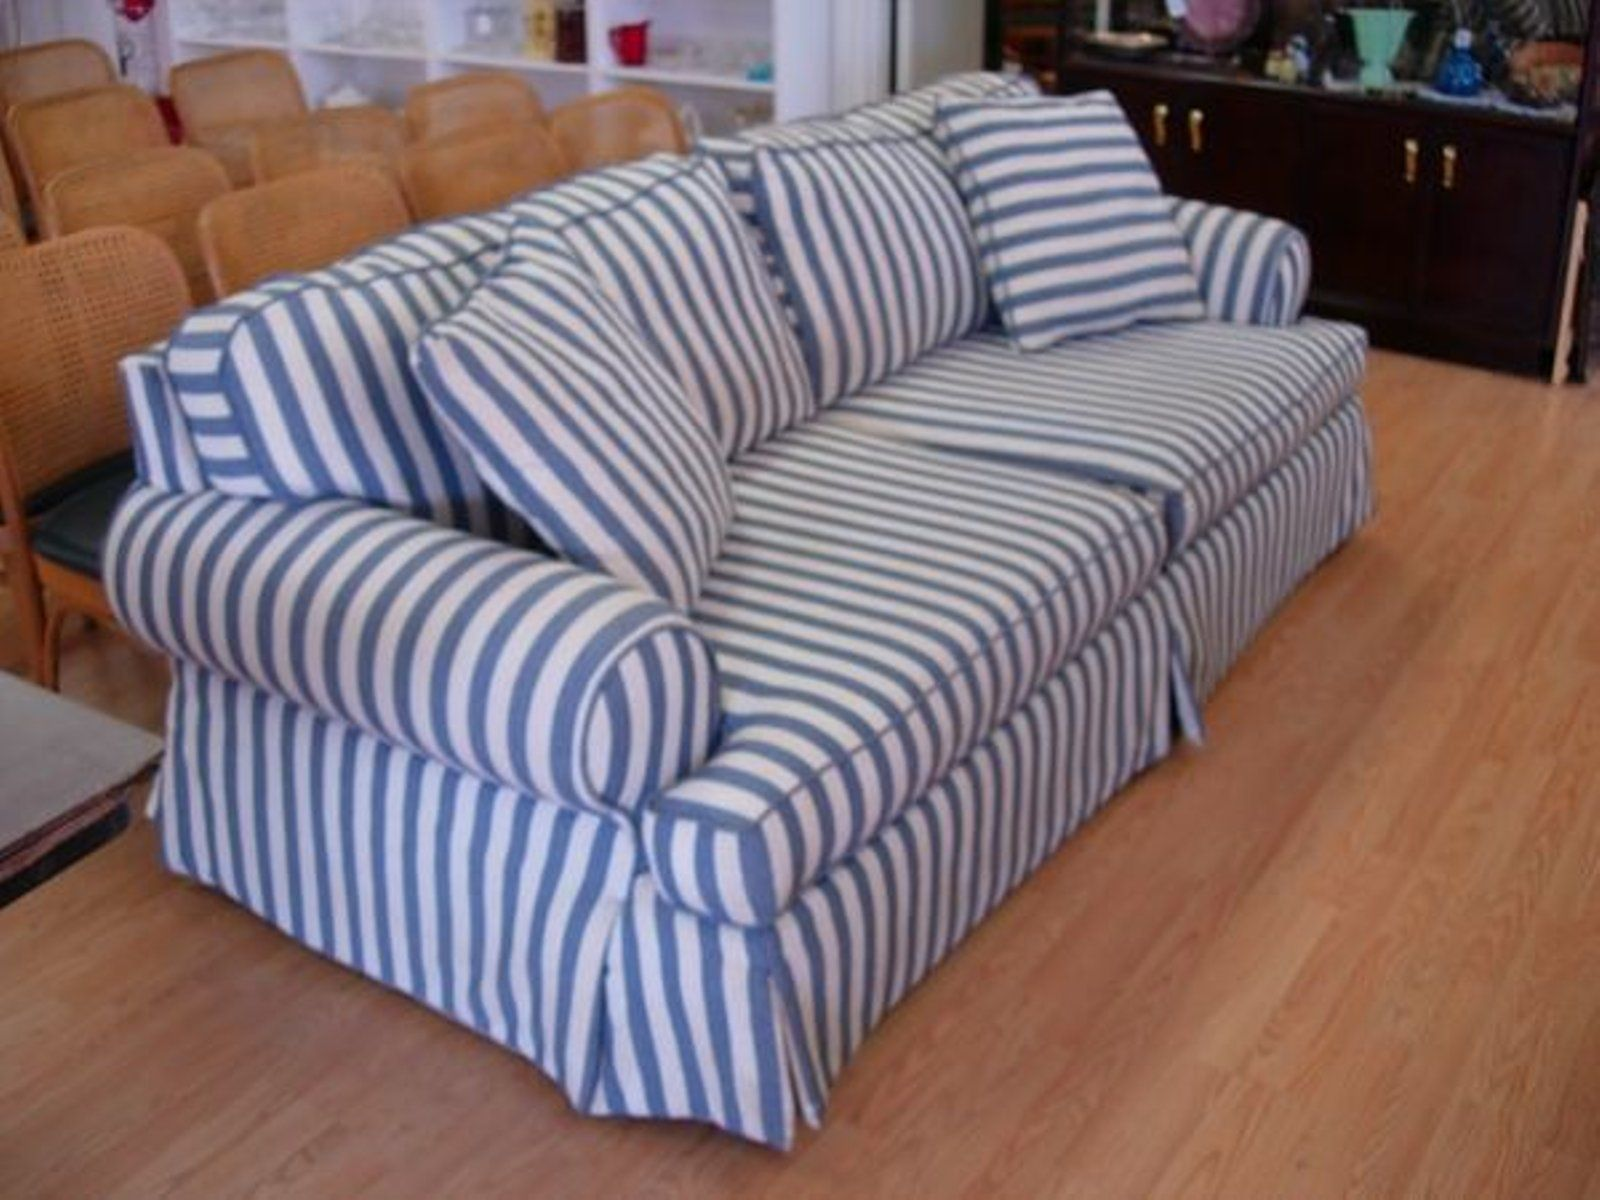 Blue Fl Sofa Outdoor Patio Covers Striped Free Ship American Style